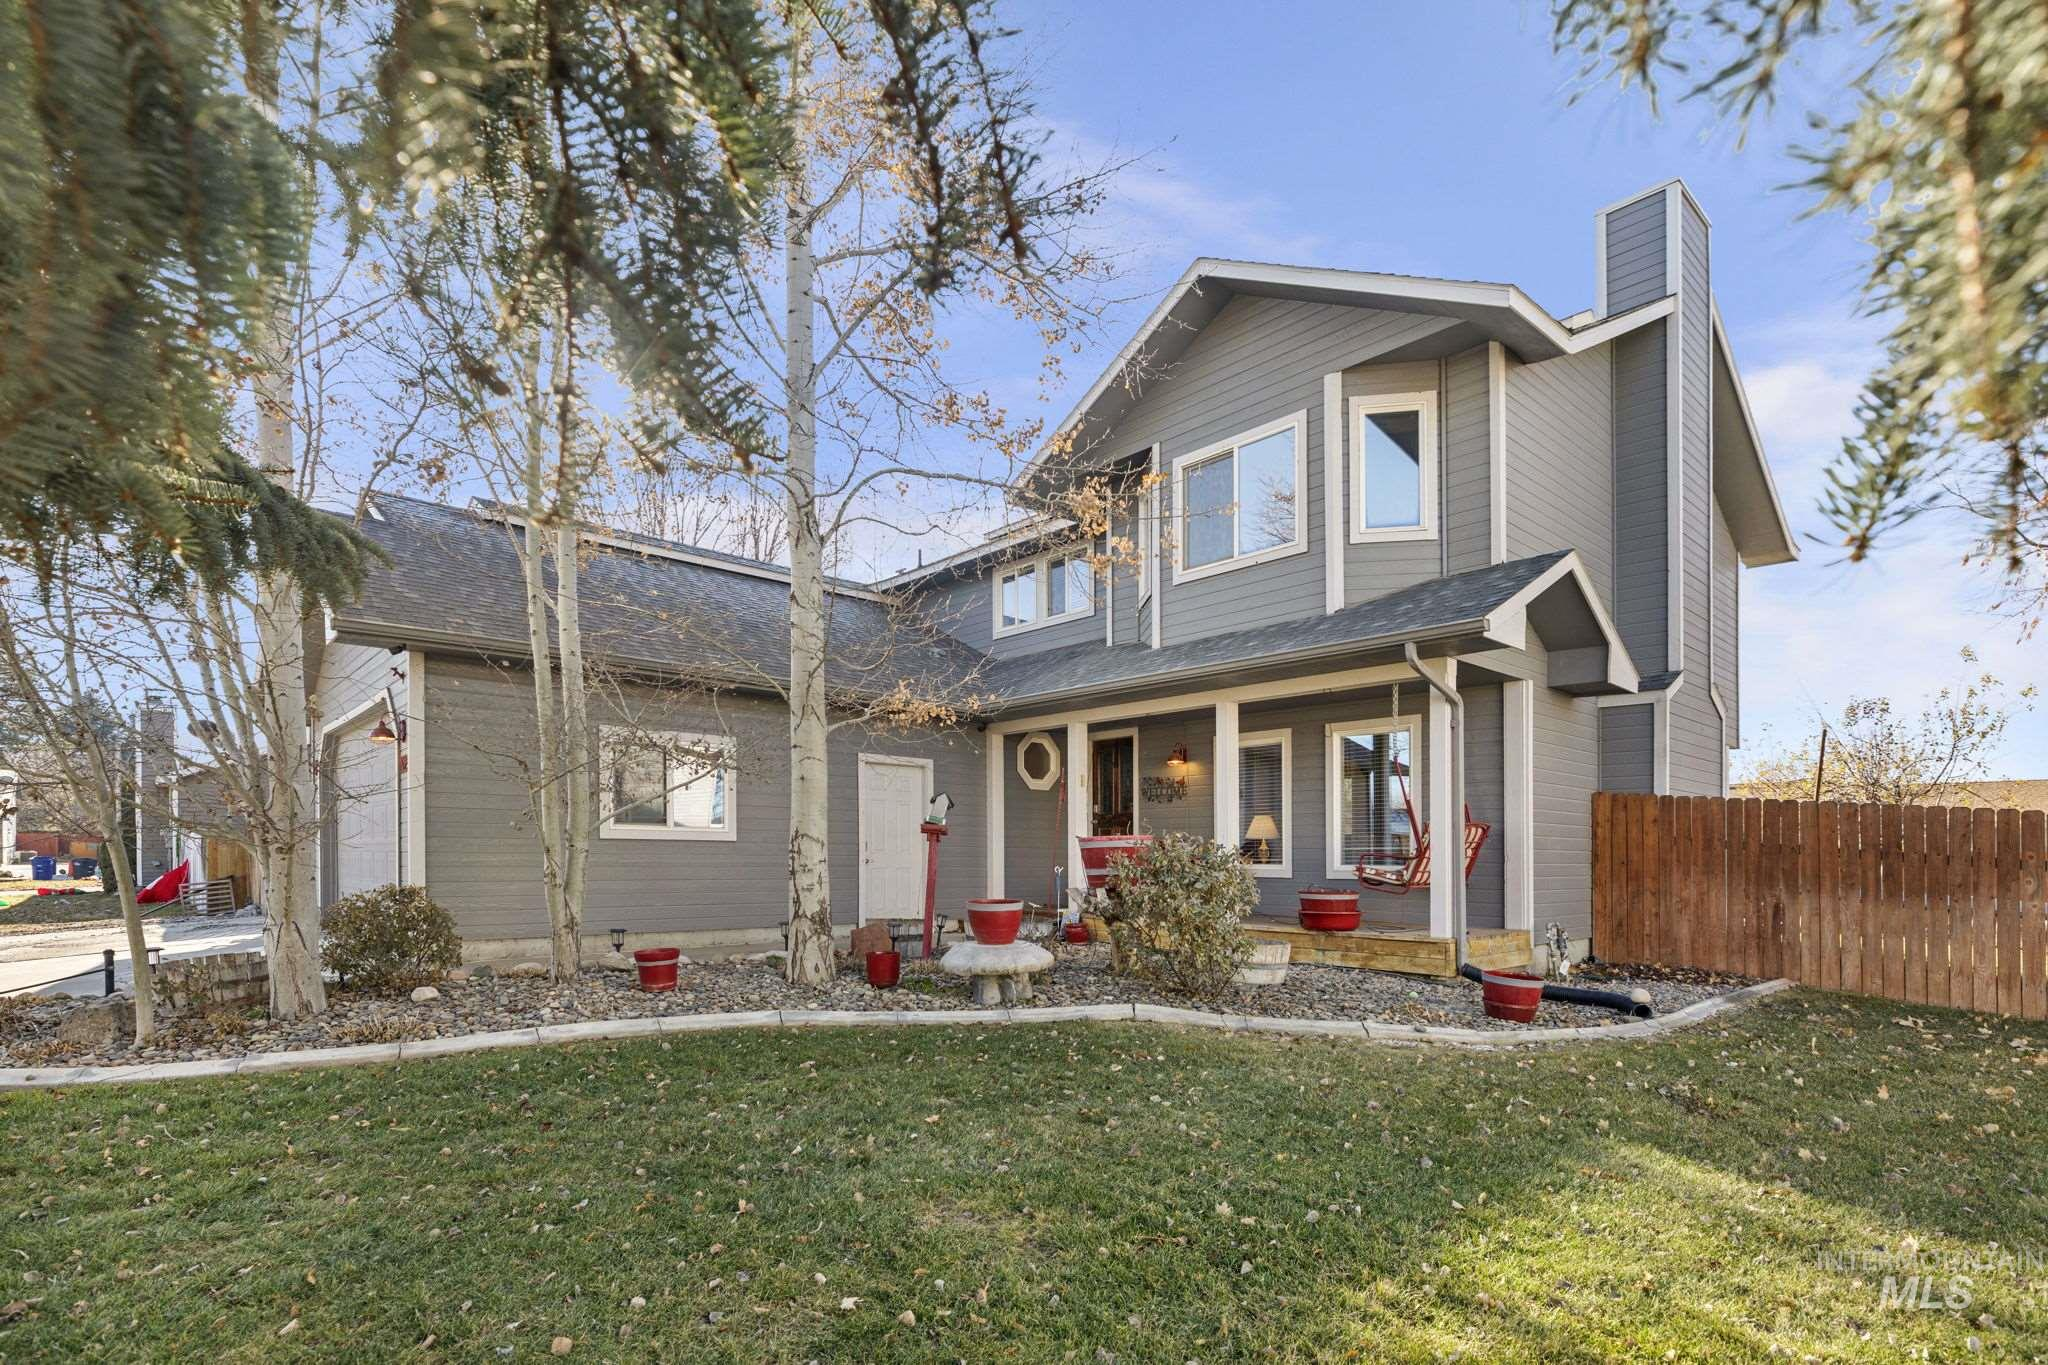 1025 Sawtooth Blvd, Twin Falls, Idaho 83301, 6 Bedrooms, 3.5 Bathrooms, Residential For Sale, Price $385,000, 98788028